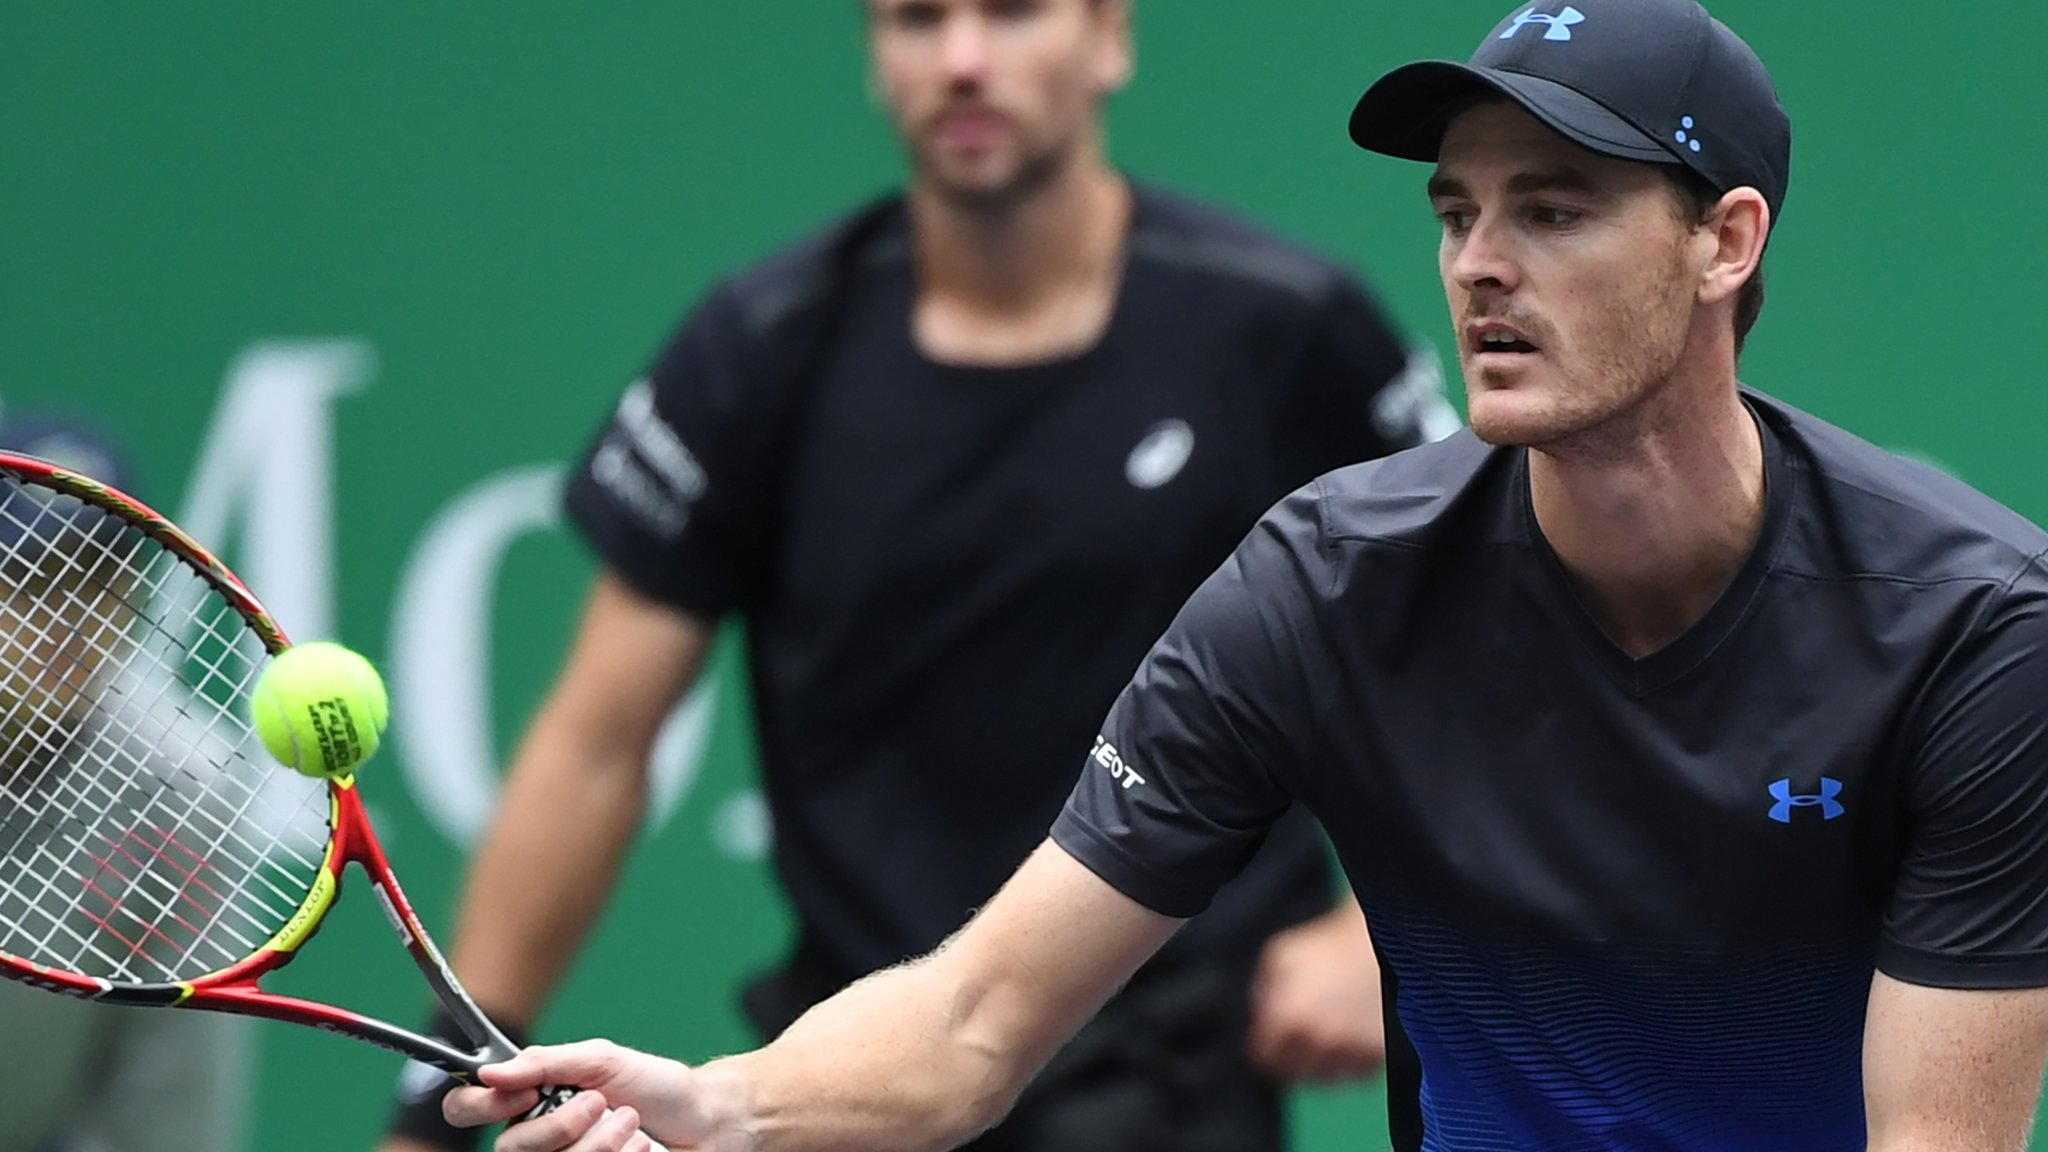 Shanghai Masters: Jamie Murray & Bruno Soares lose final to Kubot and Melo